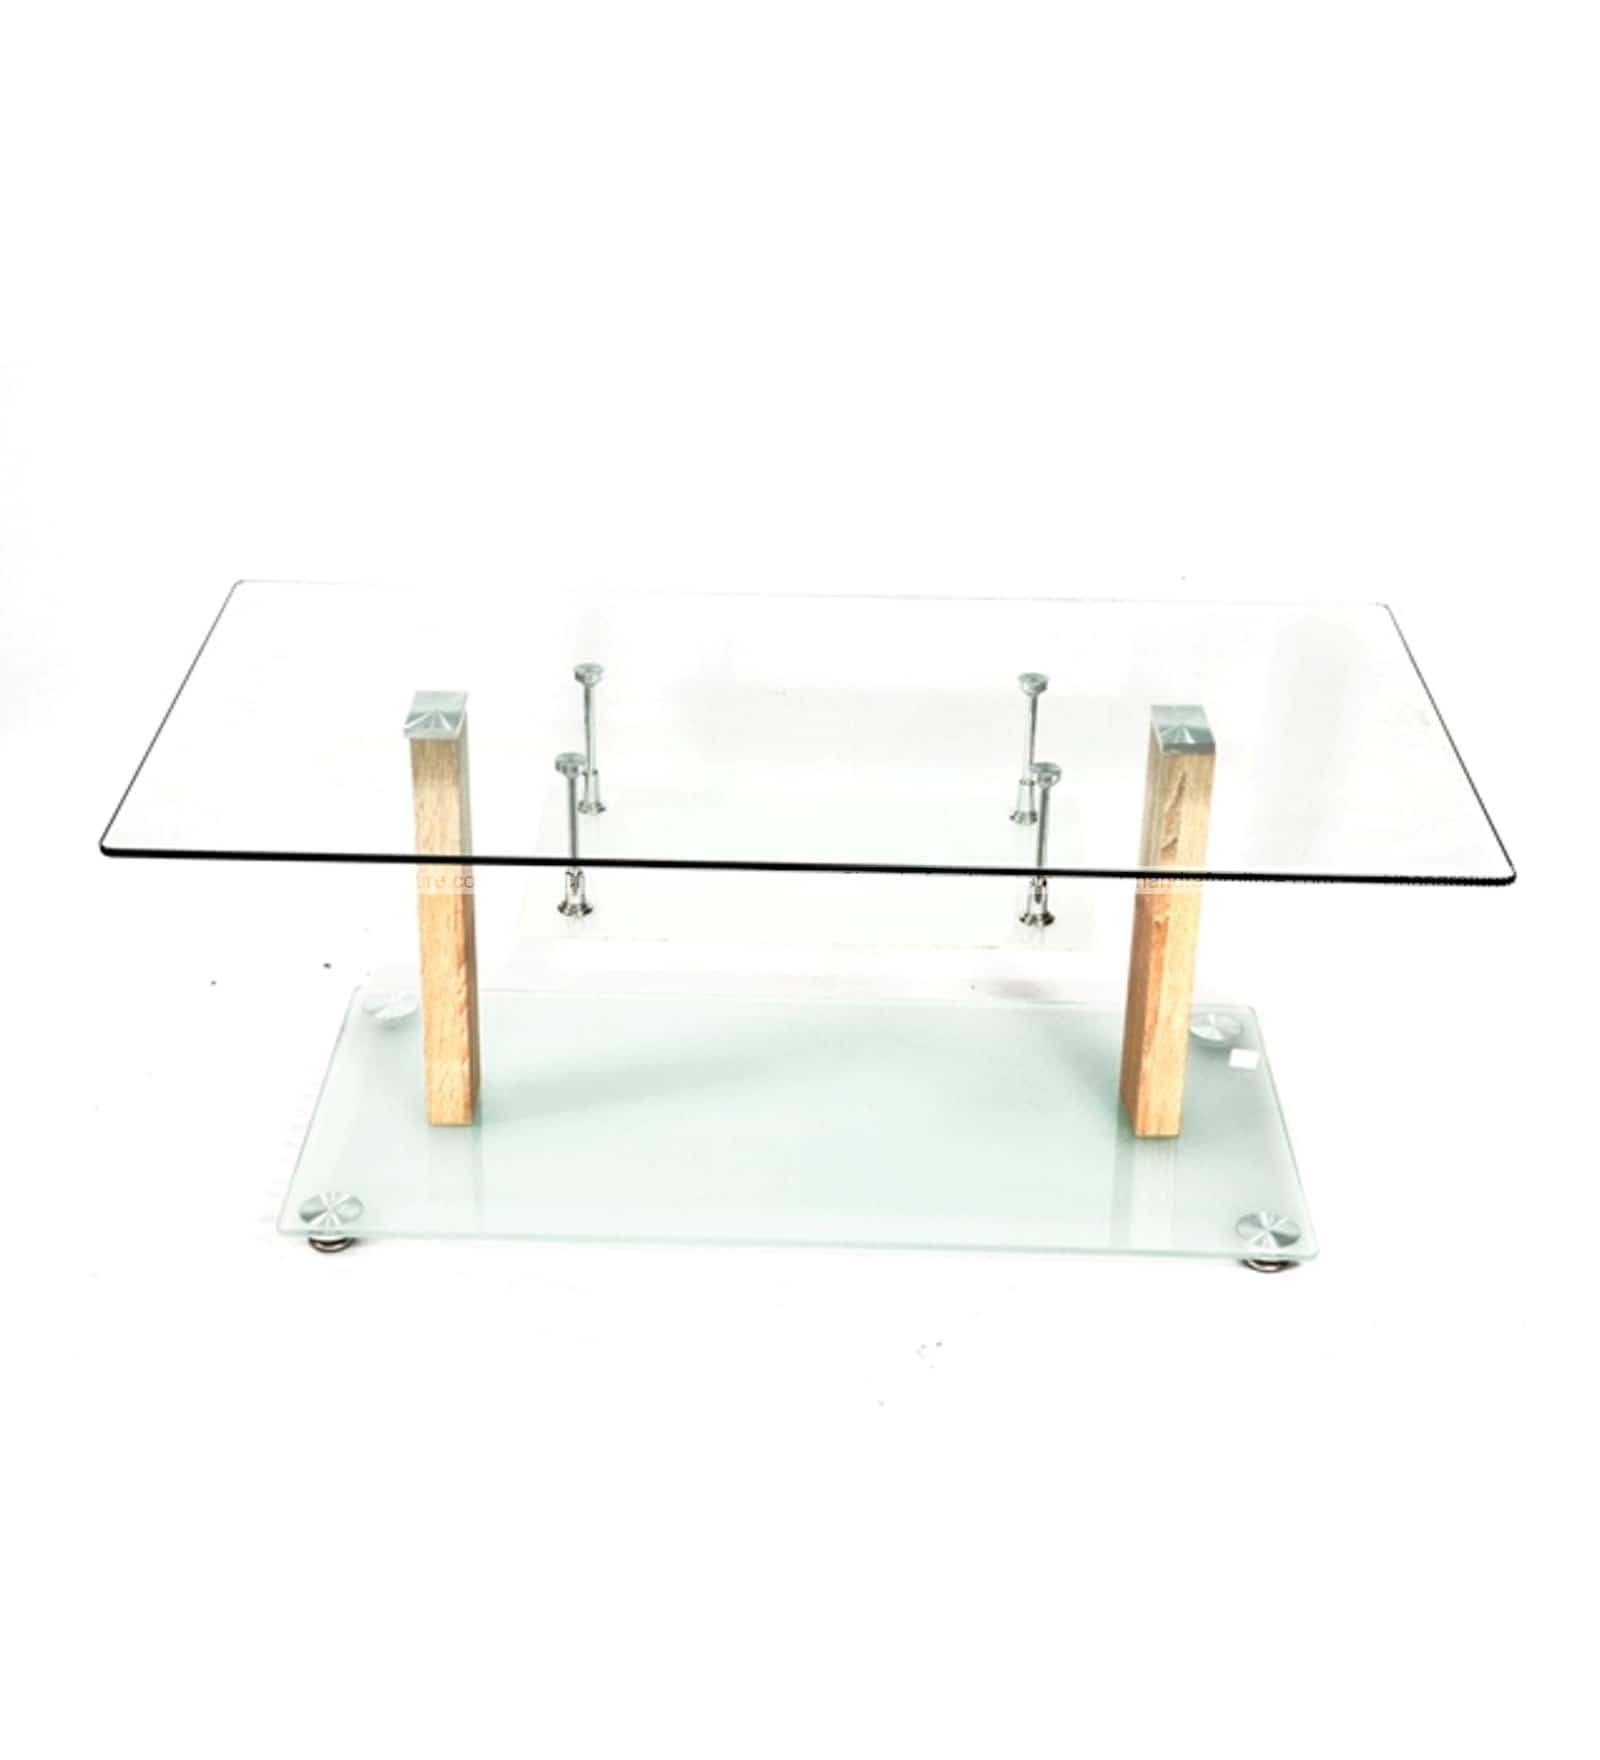 CHANDRA FURNITURE CENTER TABLE  CT-903